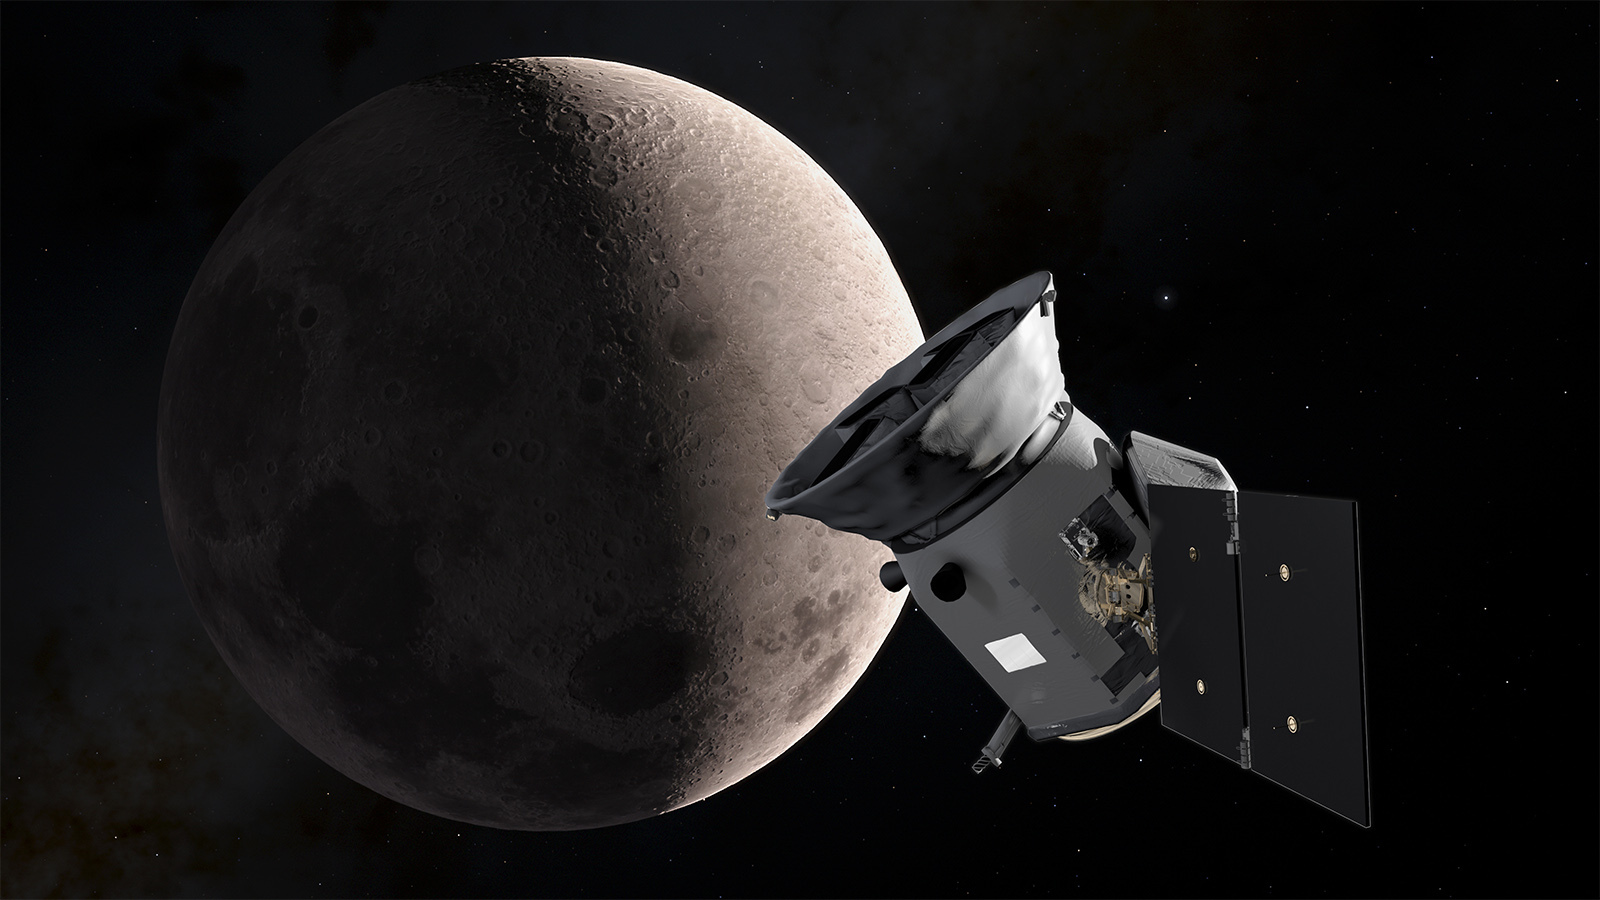 An illustration of TESS and the Moon.